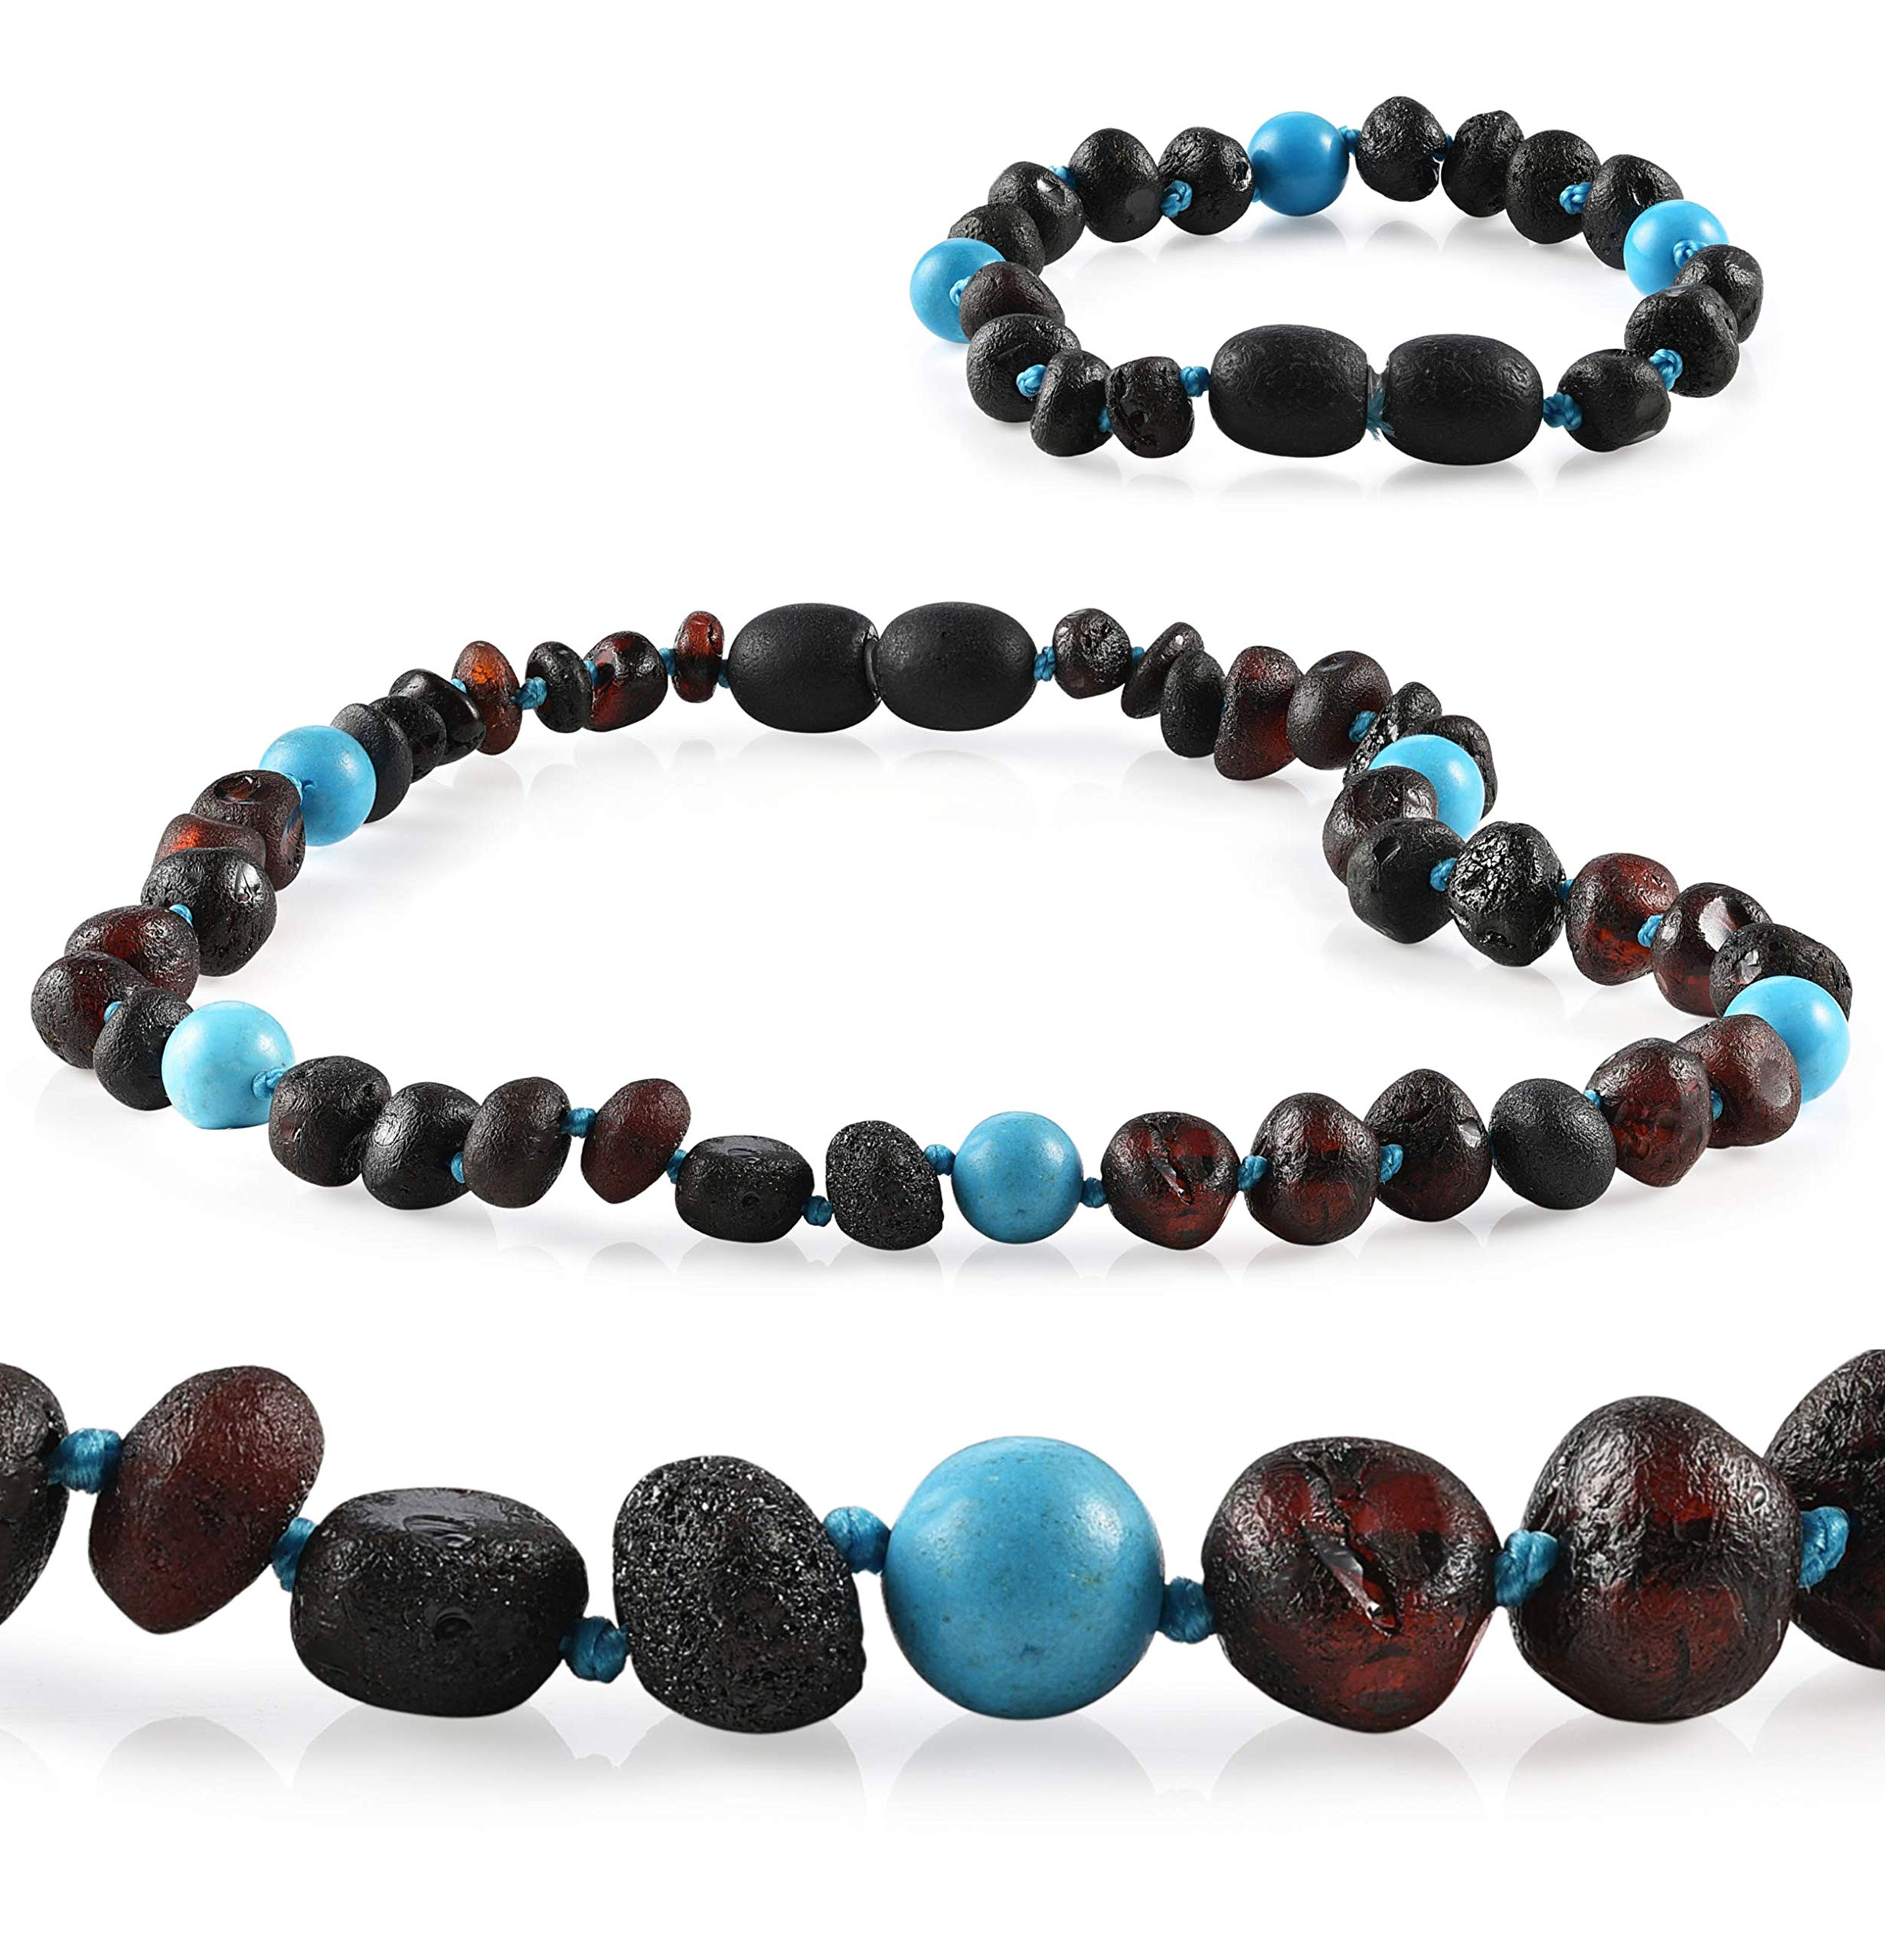 Premium Grade Amber Teething Necklace WITH Bracelet Set - Baltic Amber Teething Necklace in 3 Sizes - Relief for Baby, Toddler & Child - Teether with Unpolished Cherry Turquoise Amber Beads (10-11'') by R.B. Amber & Sons